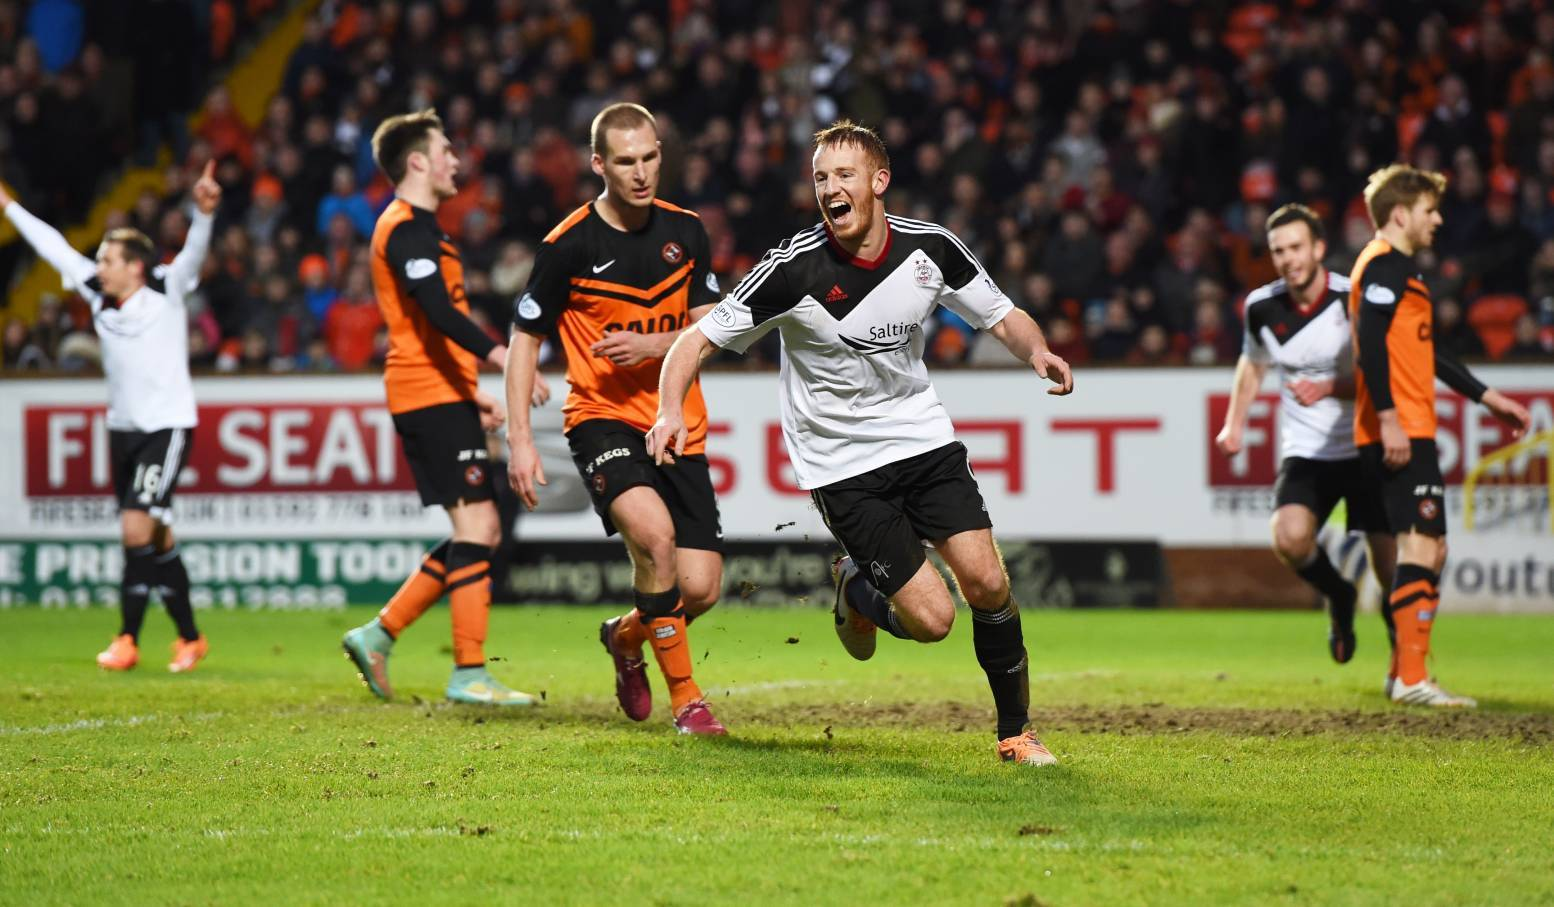 We've all missed the clashes between Aberdeen and Dundee United.